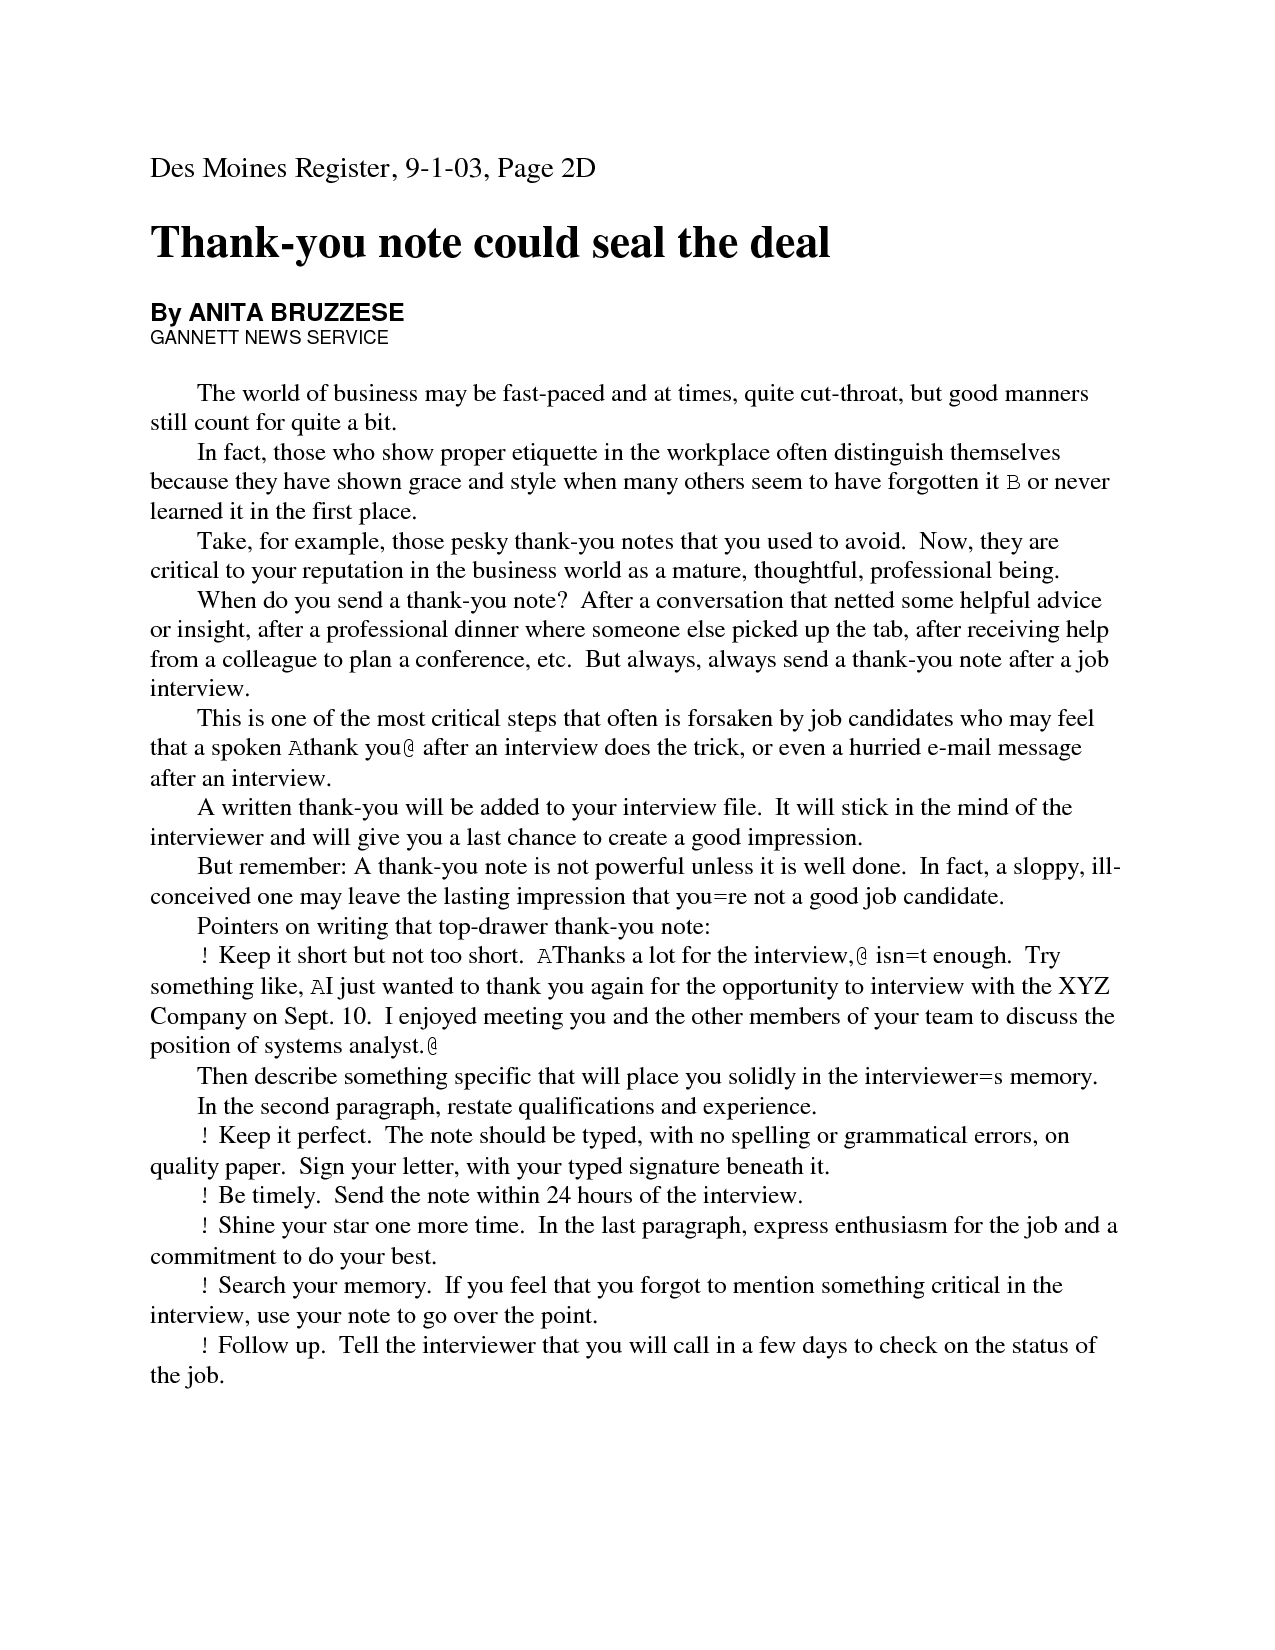 Professional Thank You Letter – Professional Thank You Letter